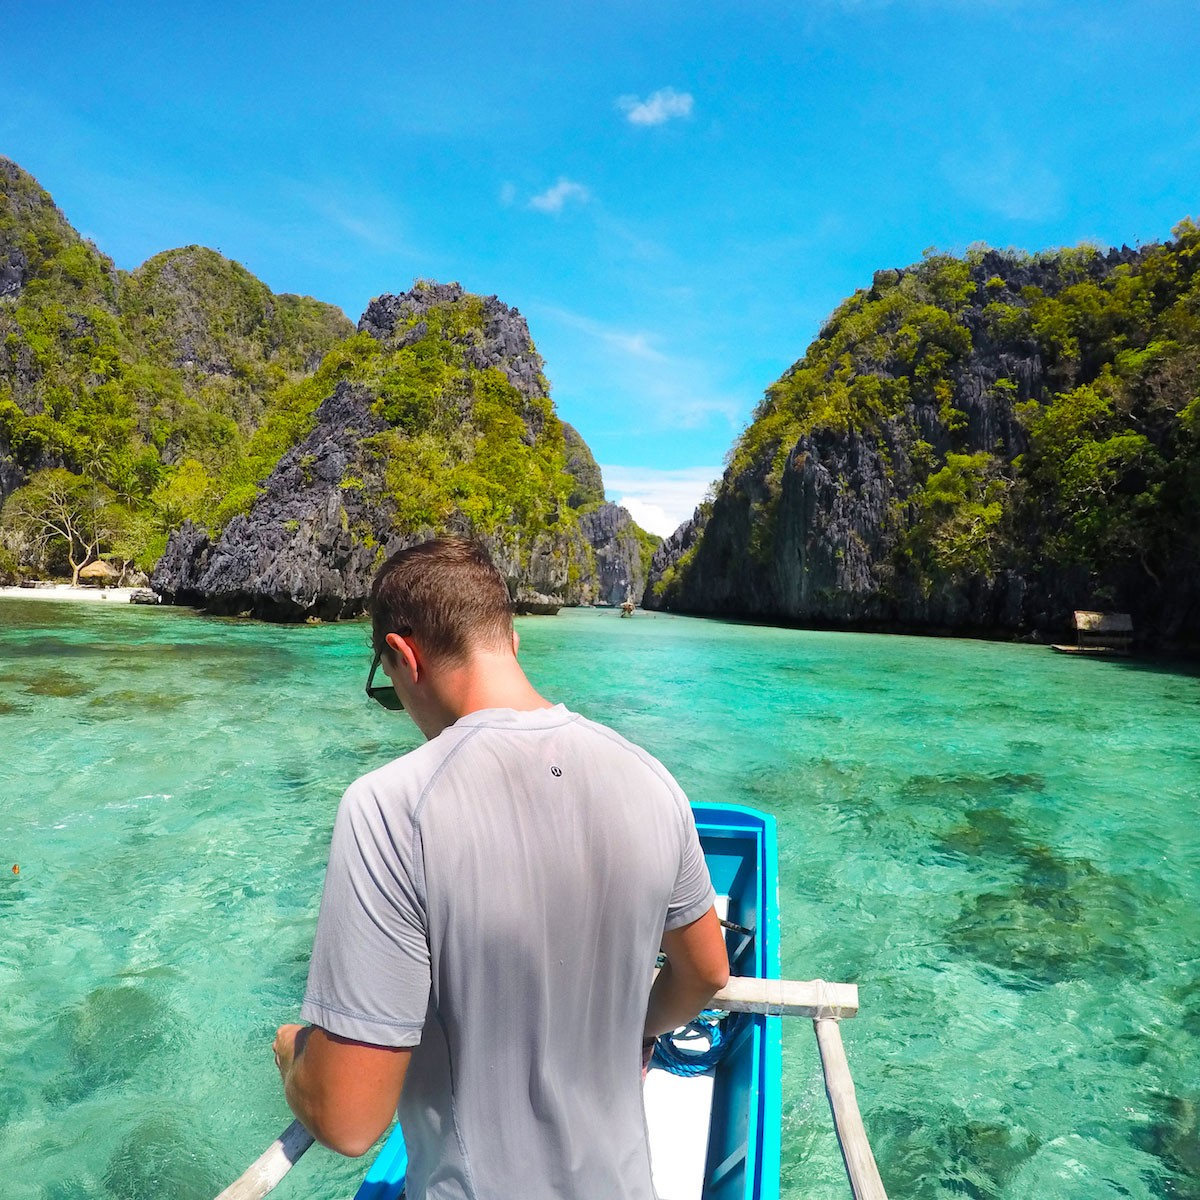 christian singles in el nido Join the largest christian dating site sign up for free and connect with other christian singles looking for love based on faith.